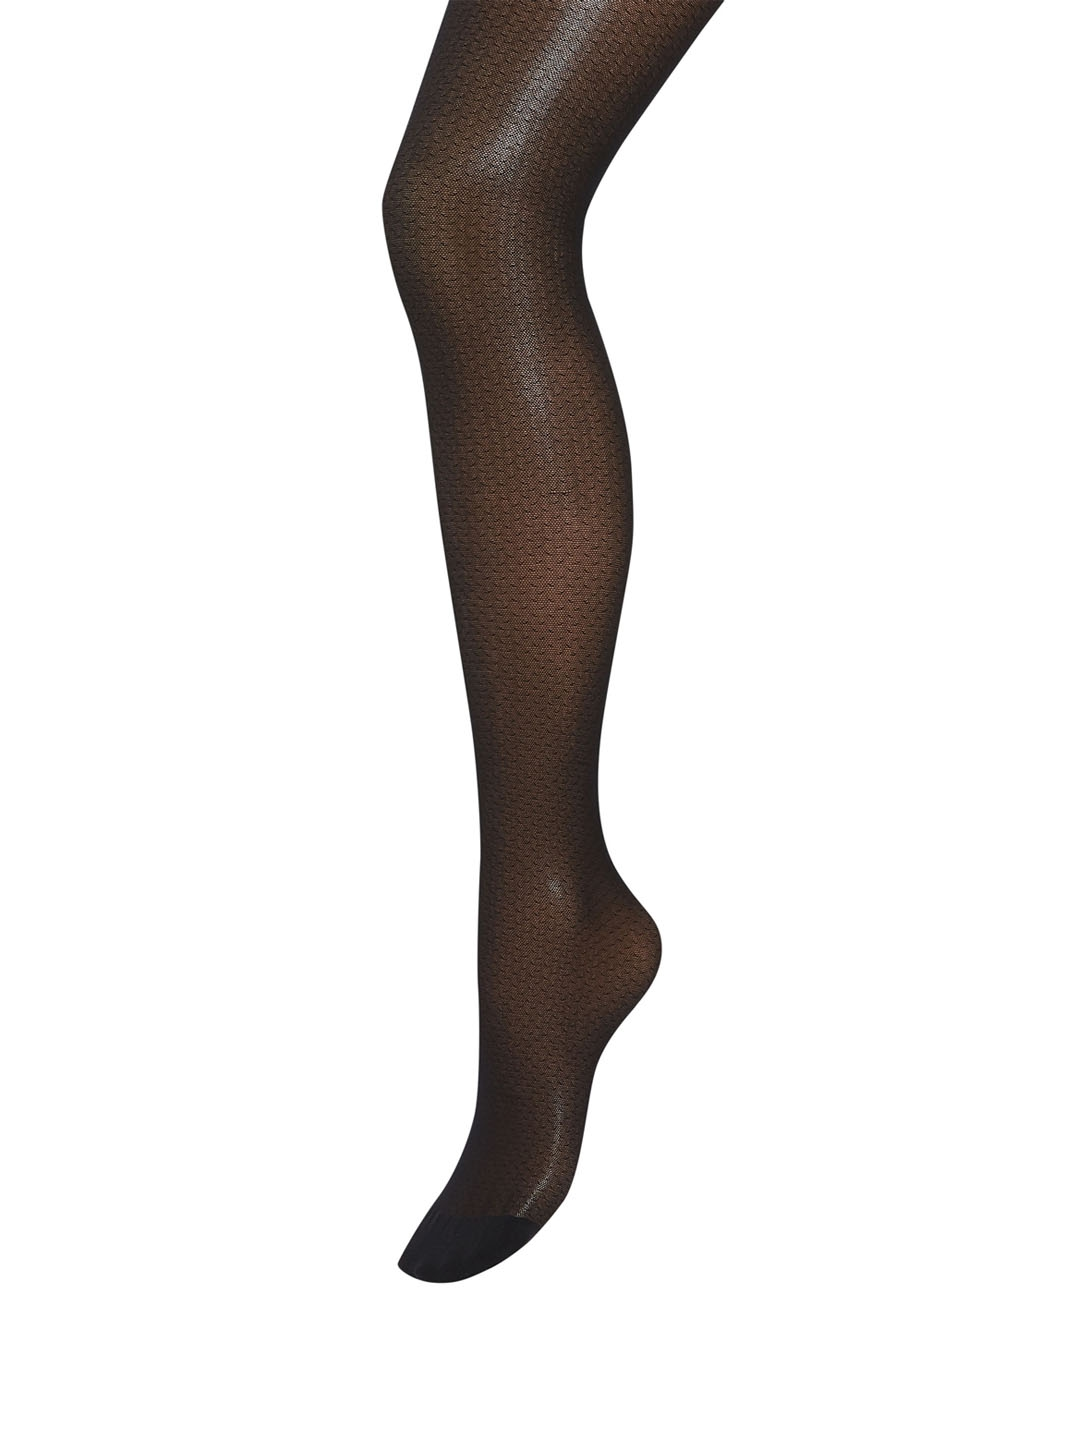 624854412b1 Buy Next Women Black Sheer Stockings - Stockings for Women 6671746 ...